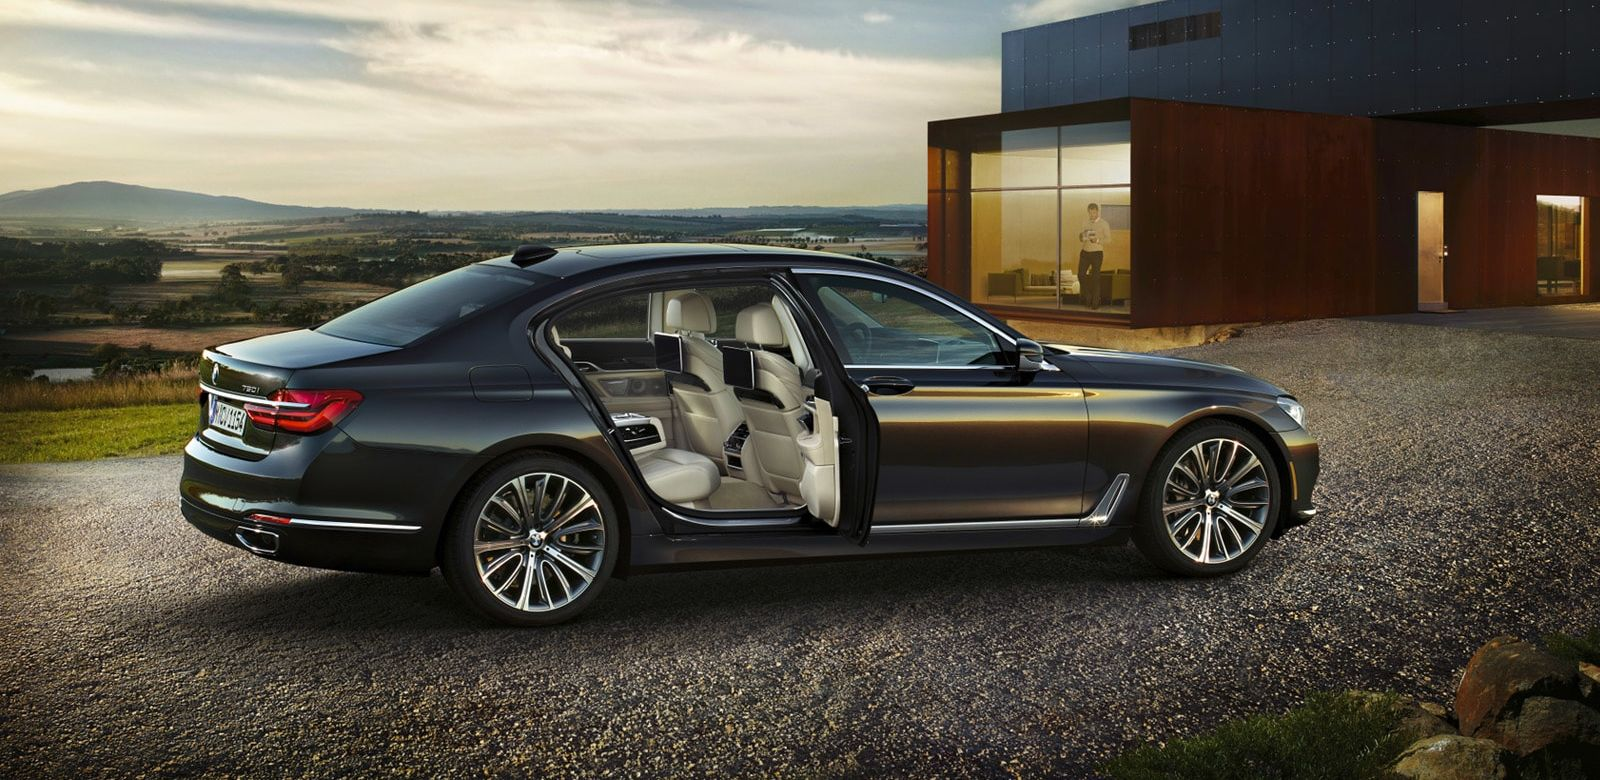 2019 BMW 7 Series for Sale near Whiting, IN